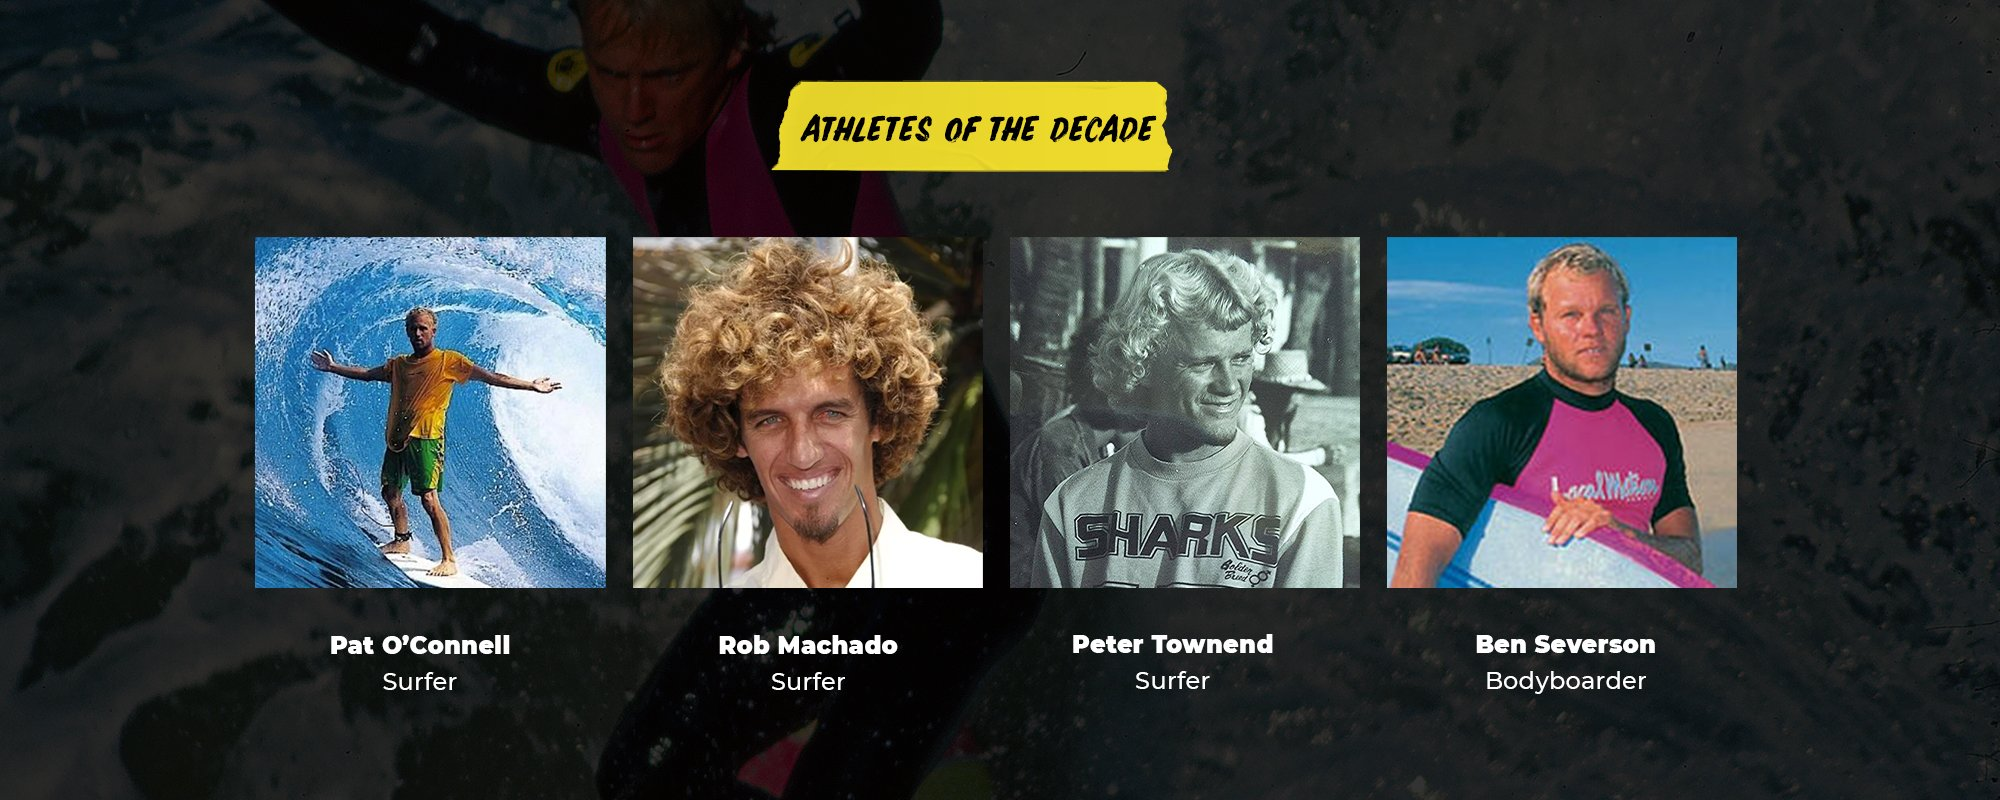 Athletes of the Decade | Pat O'Connel, Surfer | Rob Machado, Surfer | Peter Townend, Surfer | Ben Severson, Bodyboarder